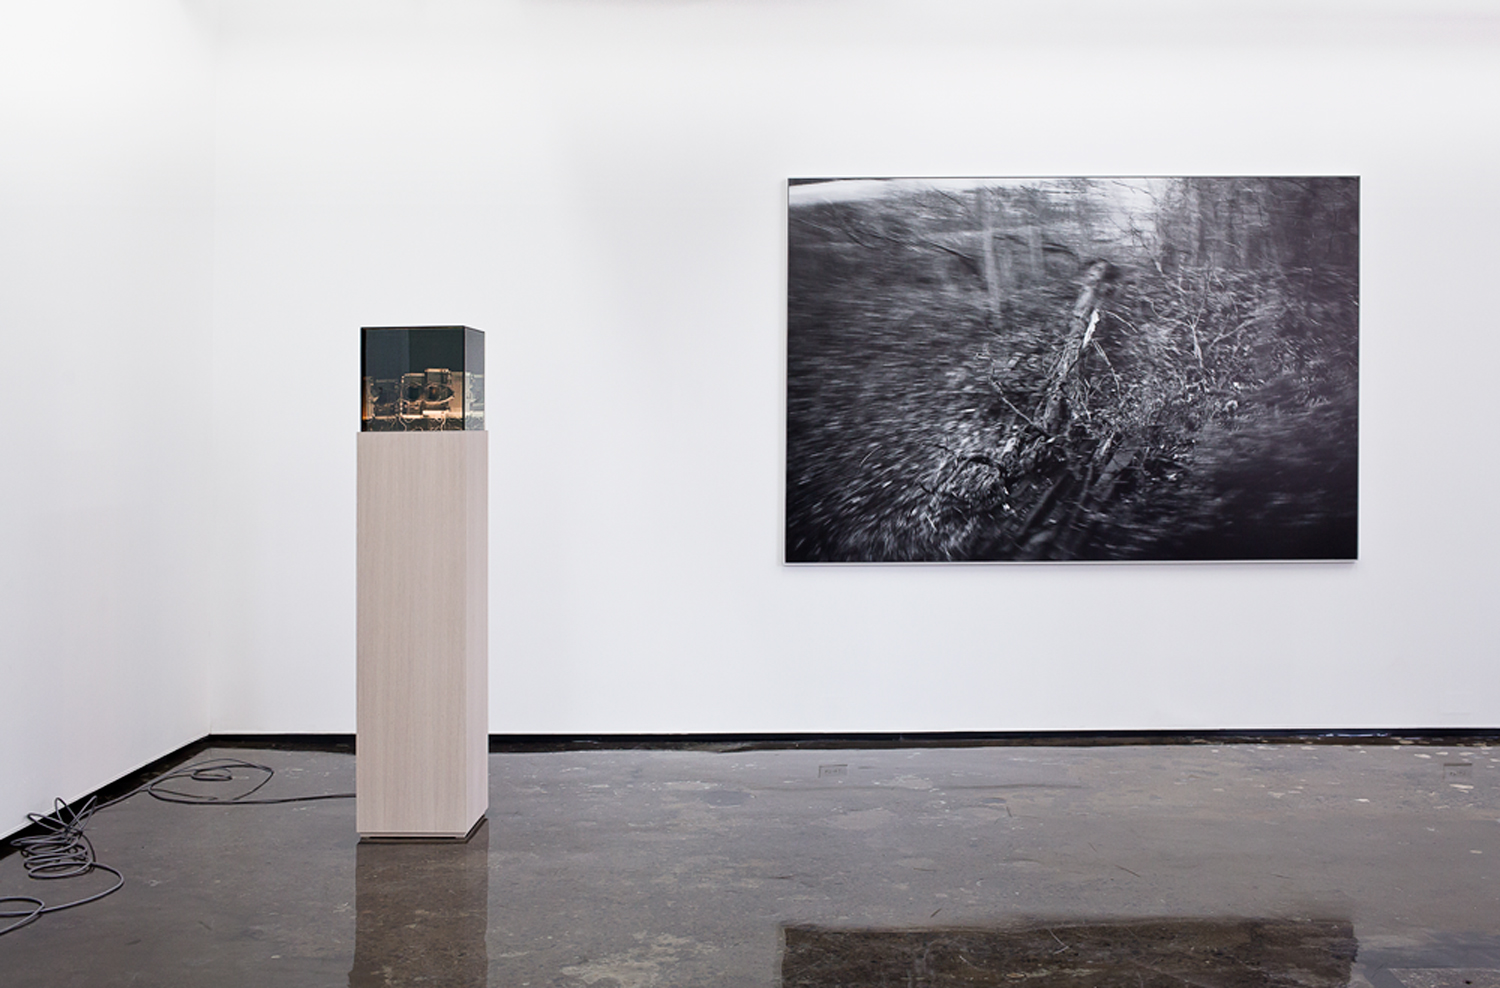 Andrew Wright, 'Untitled Photographic Pictures' at Patrick Mikhail Montreal